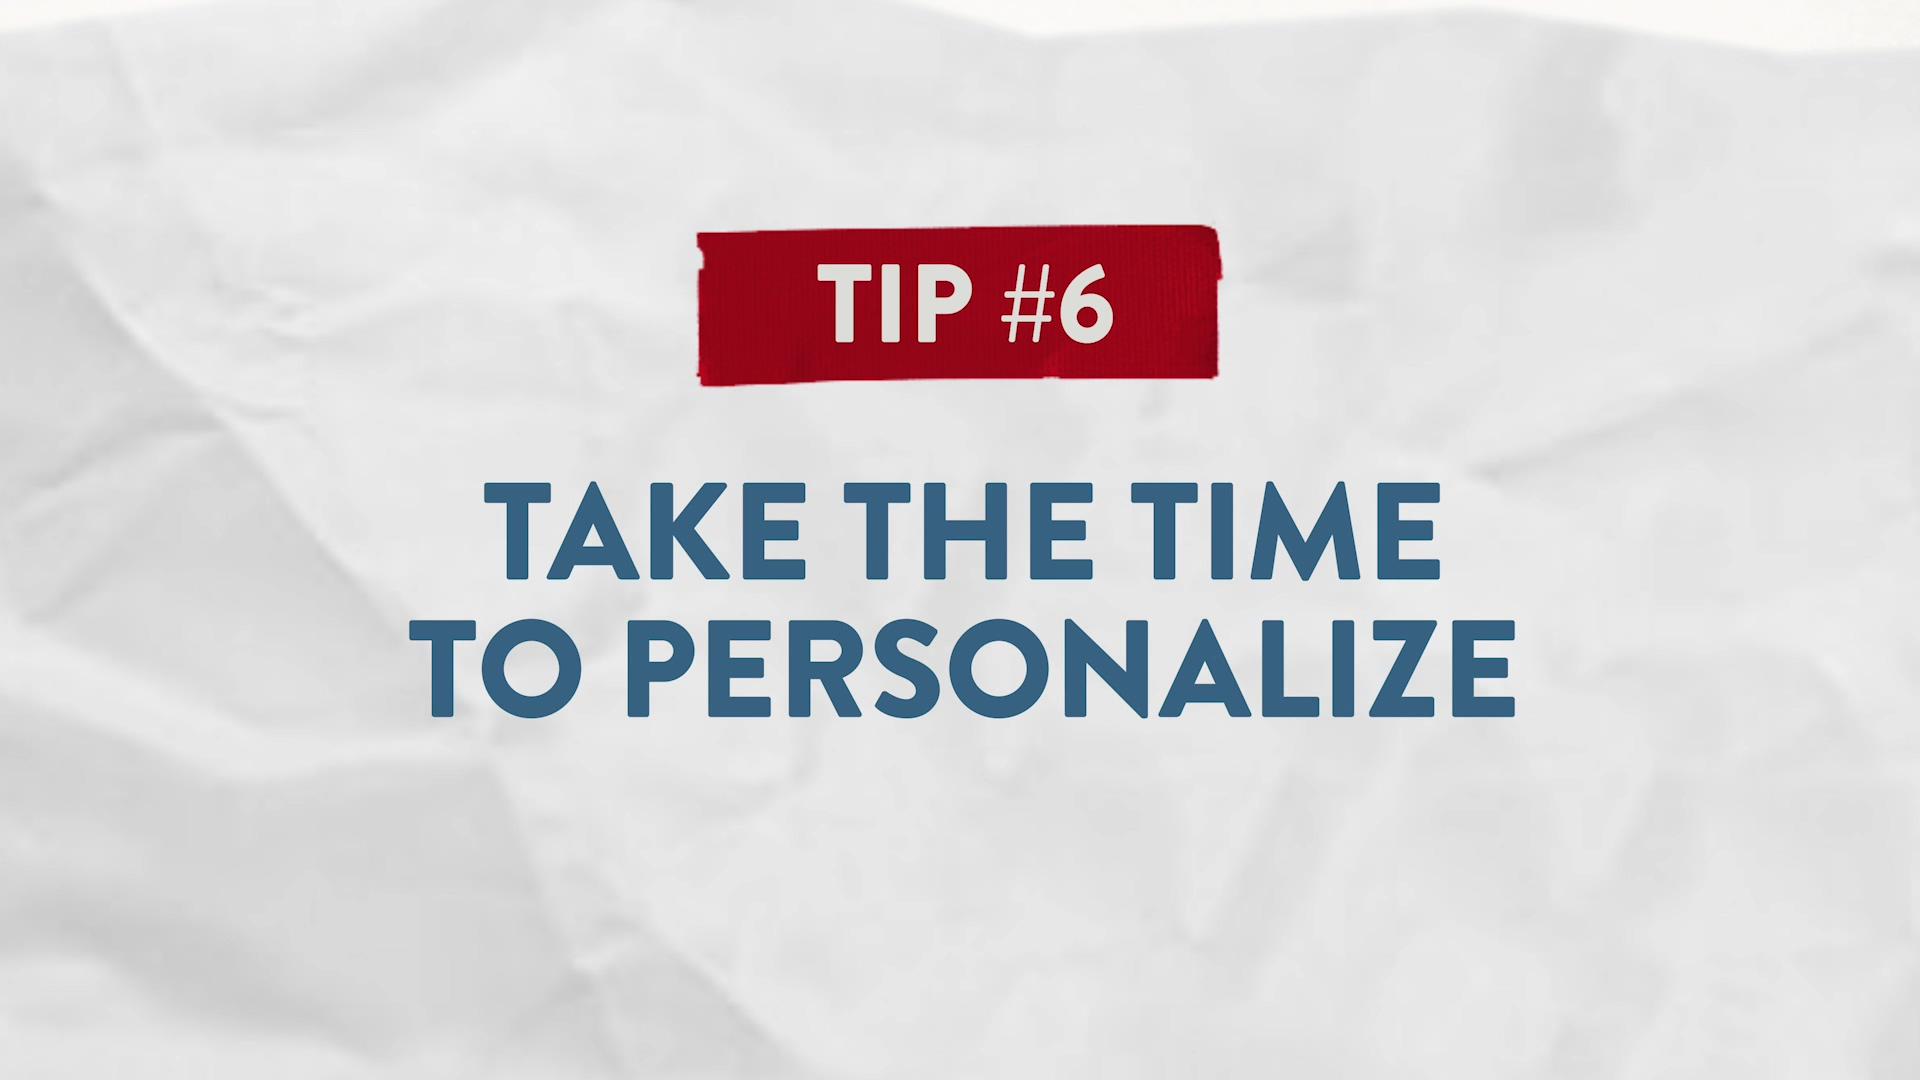 Tip #6 Take the Time to Personalize